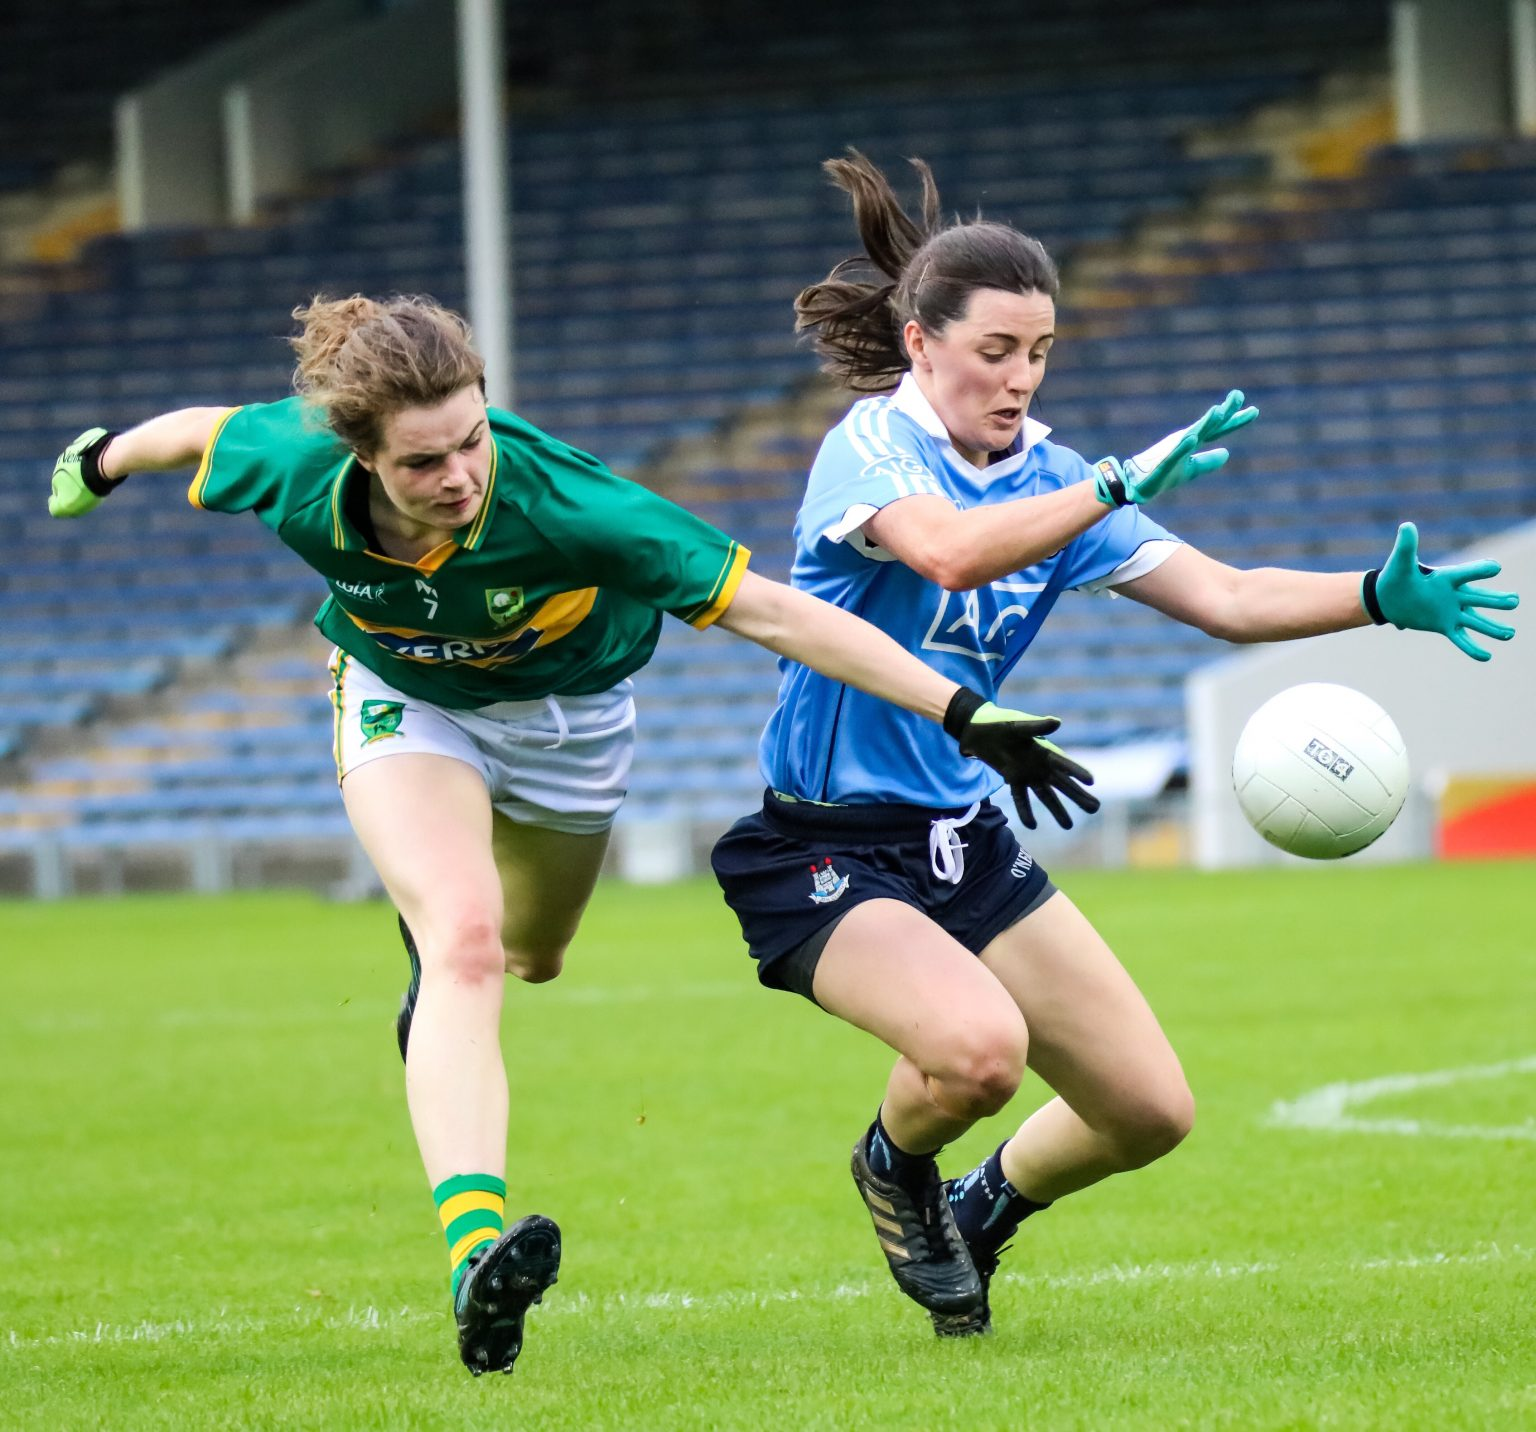 A dublin player in sky blue jersey and navy shorts and a Kerry player in a green and gold jersey battle for the ball in the All Ireland Senior Ladies Football championship